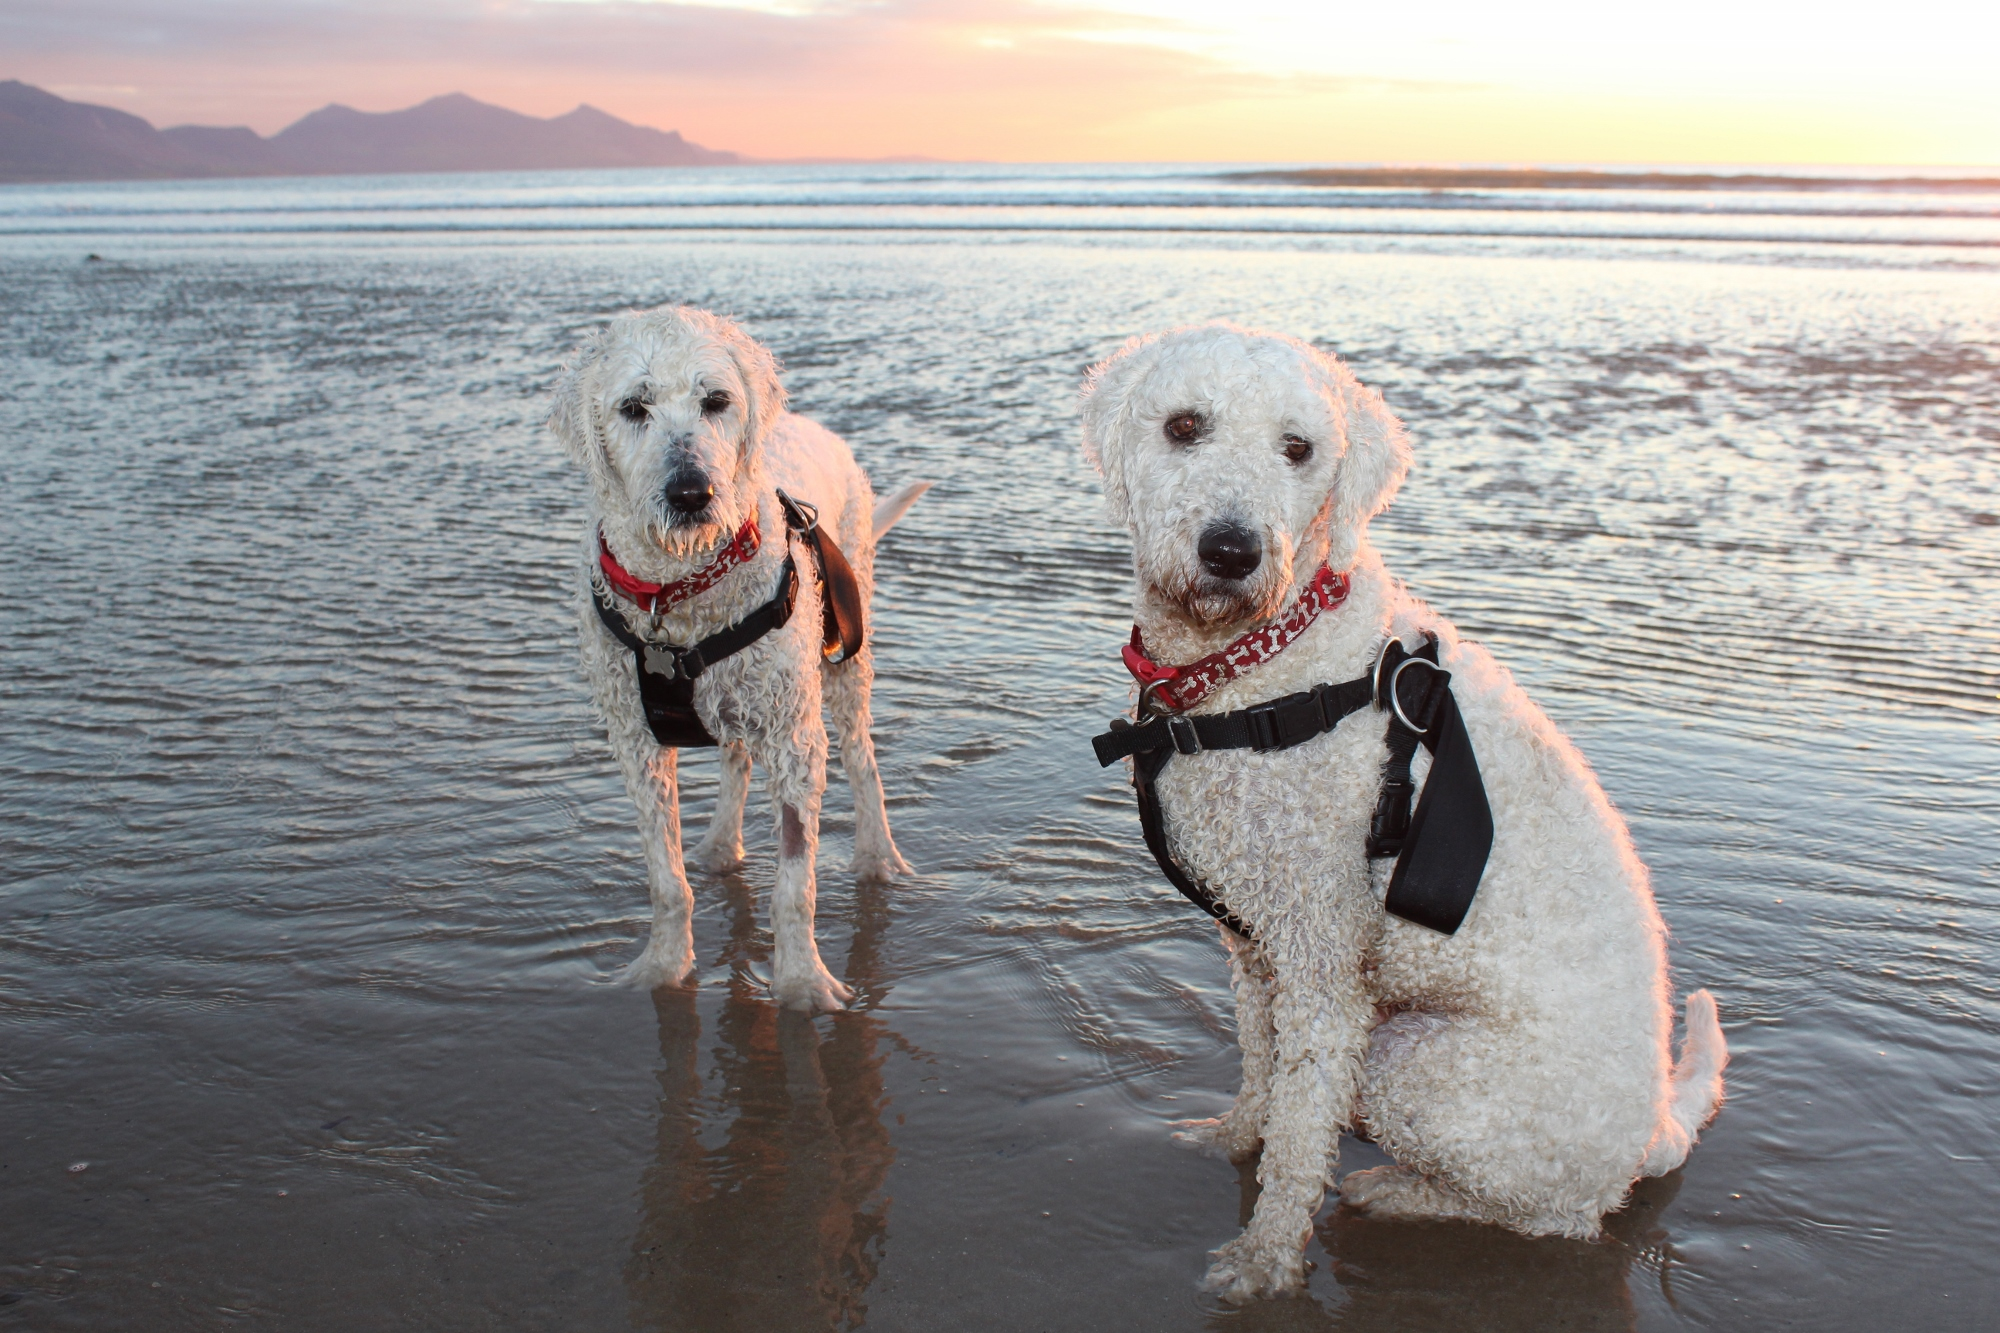 The dogs at Dinas Dinlle